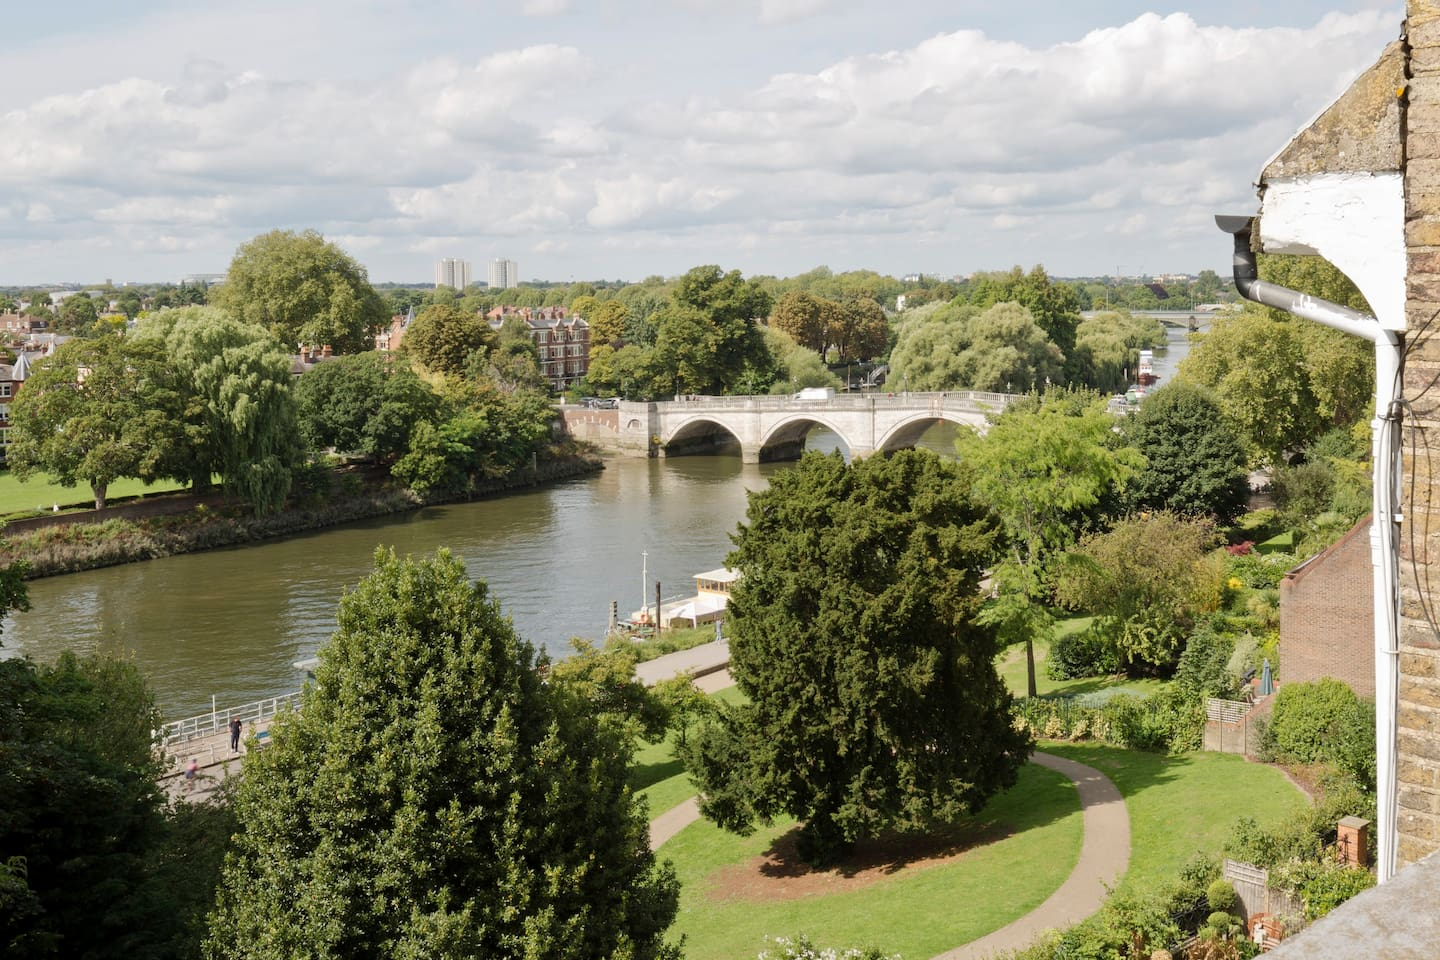 The view of the river and Richmond Bridge